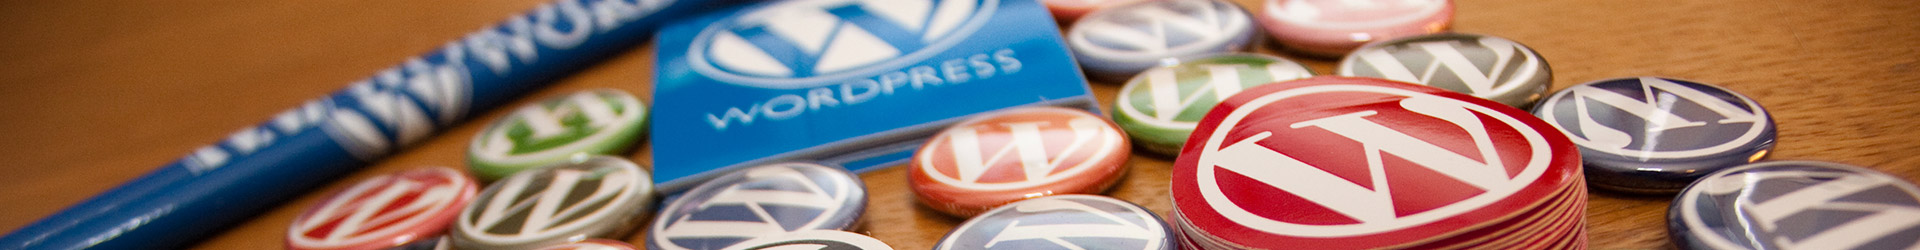 WordPress referencer